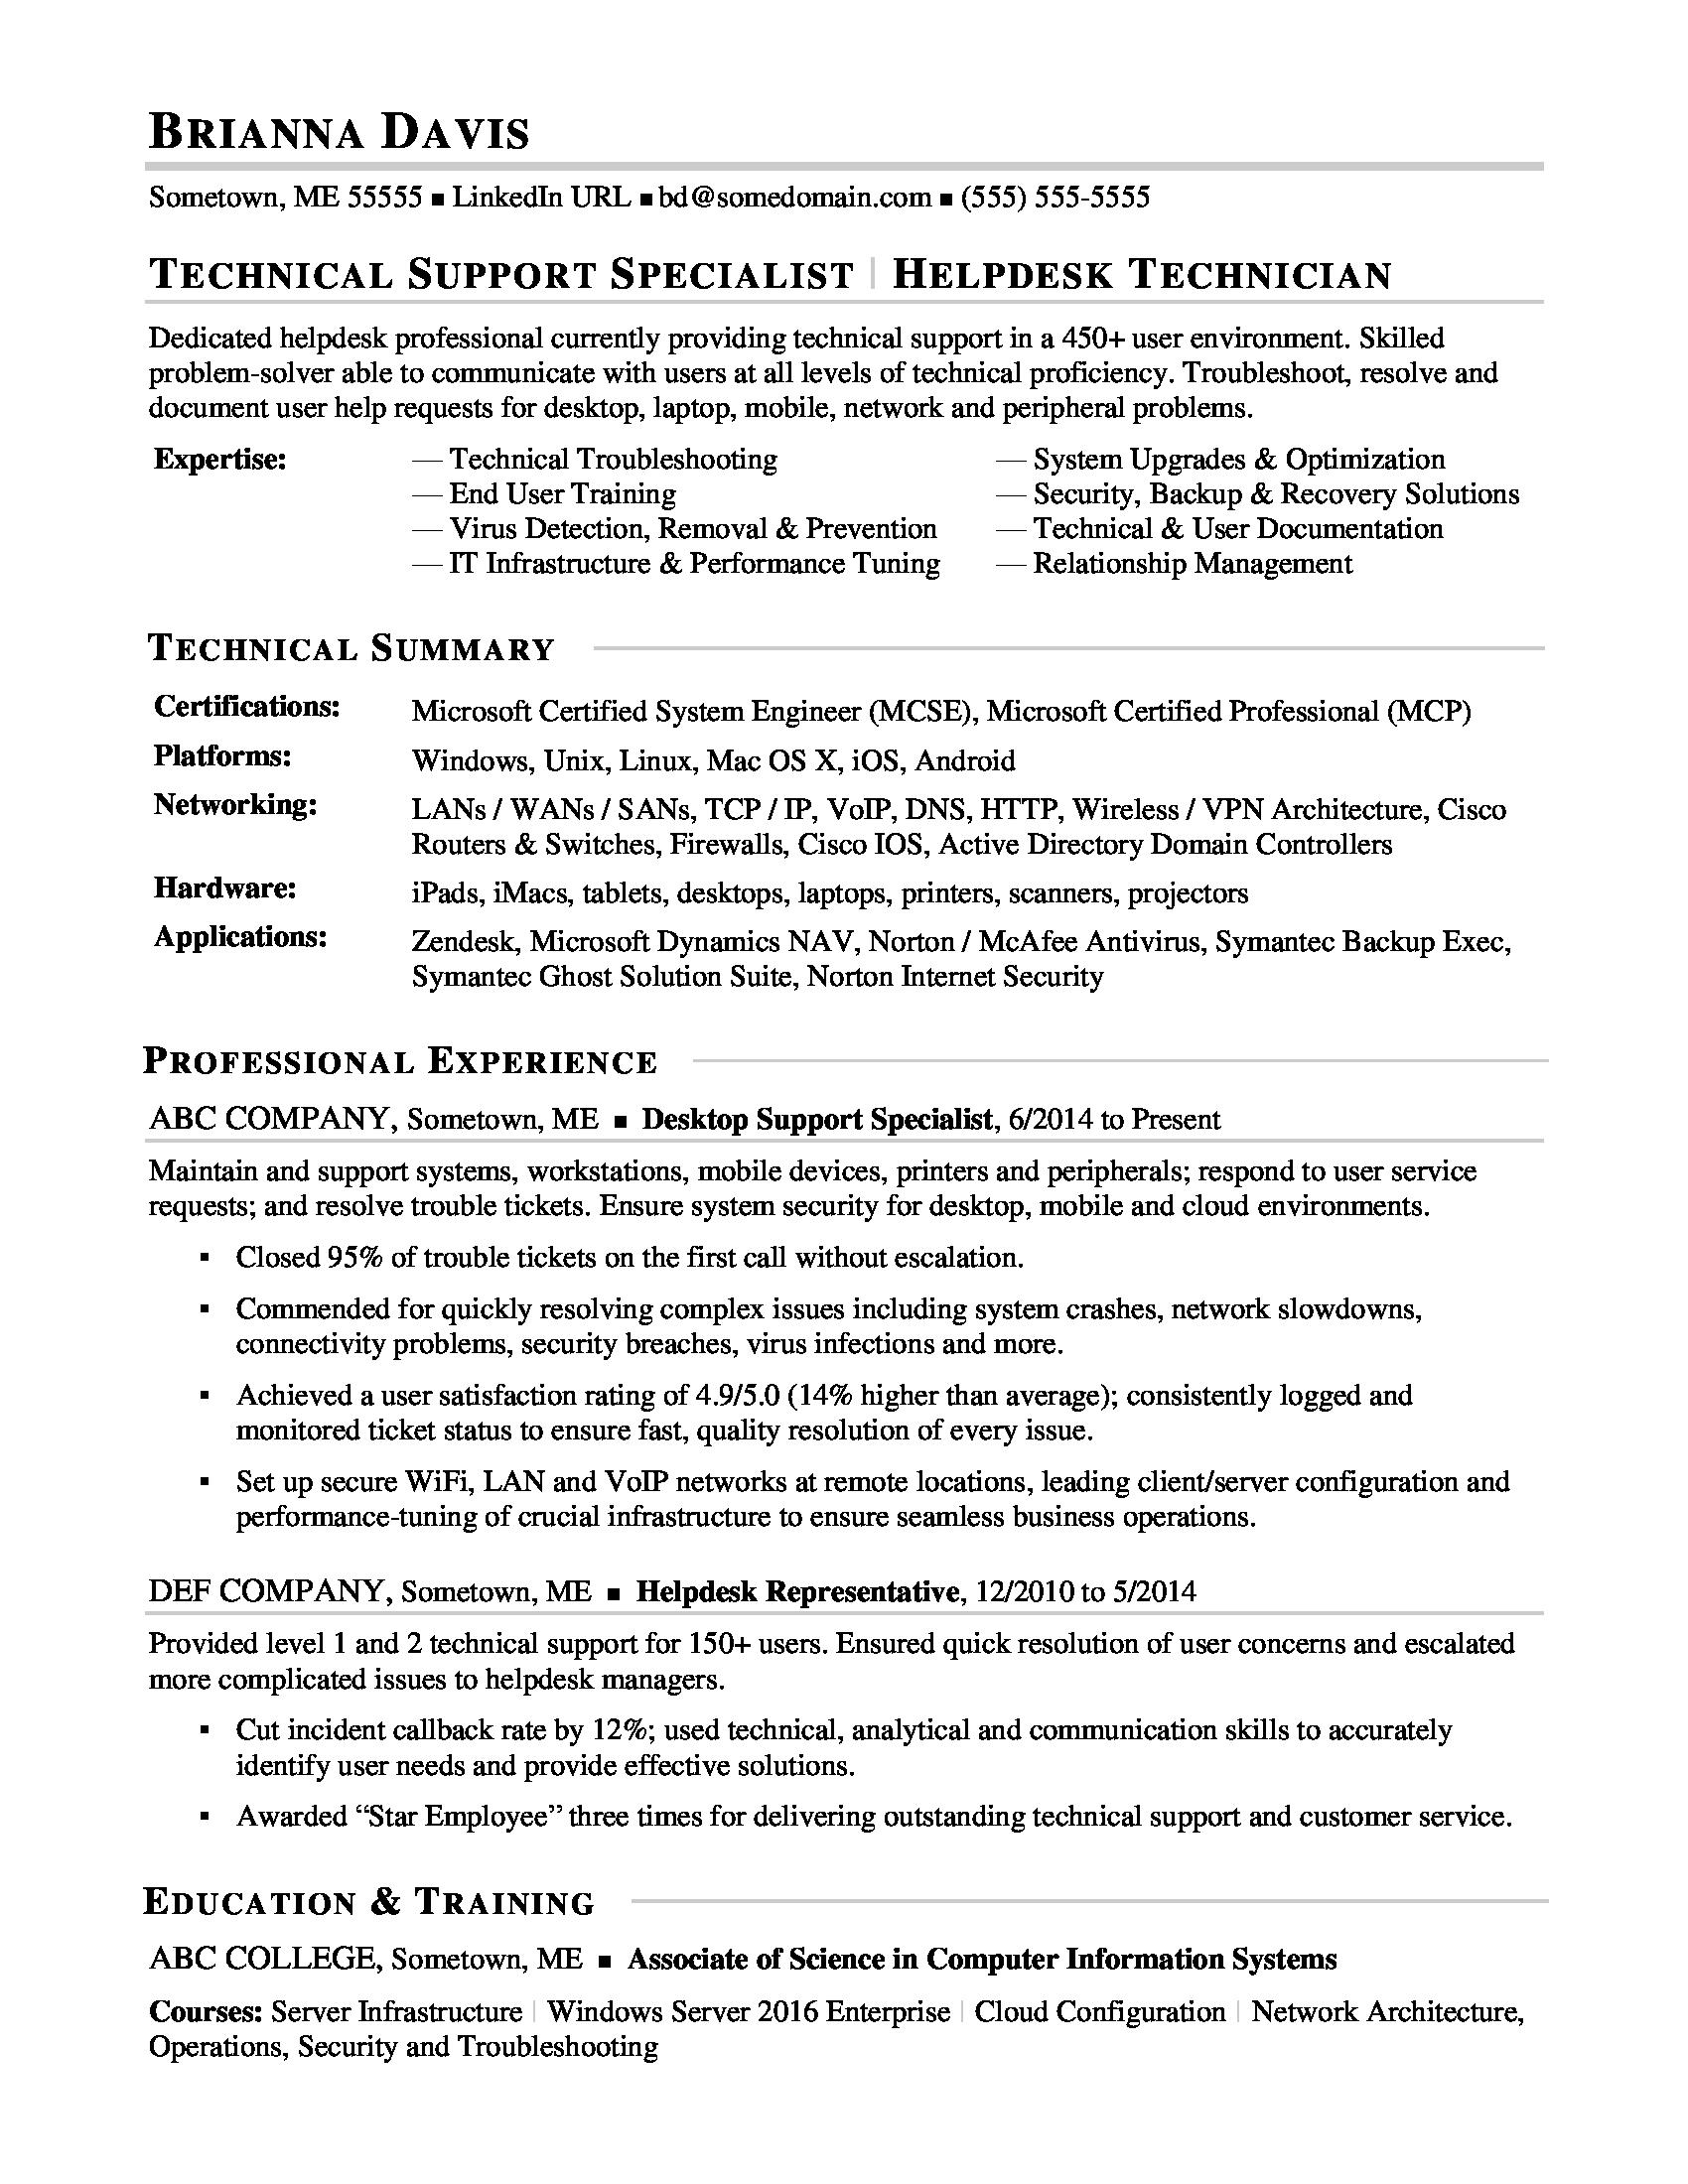 Network engineer professional summary